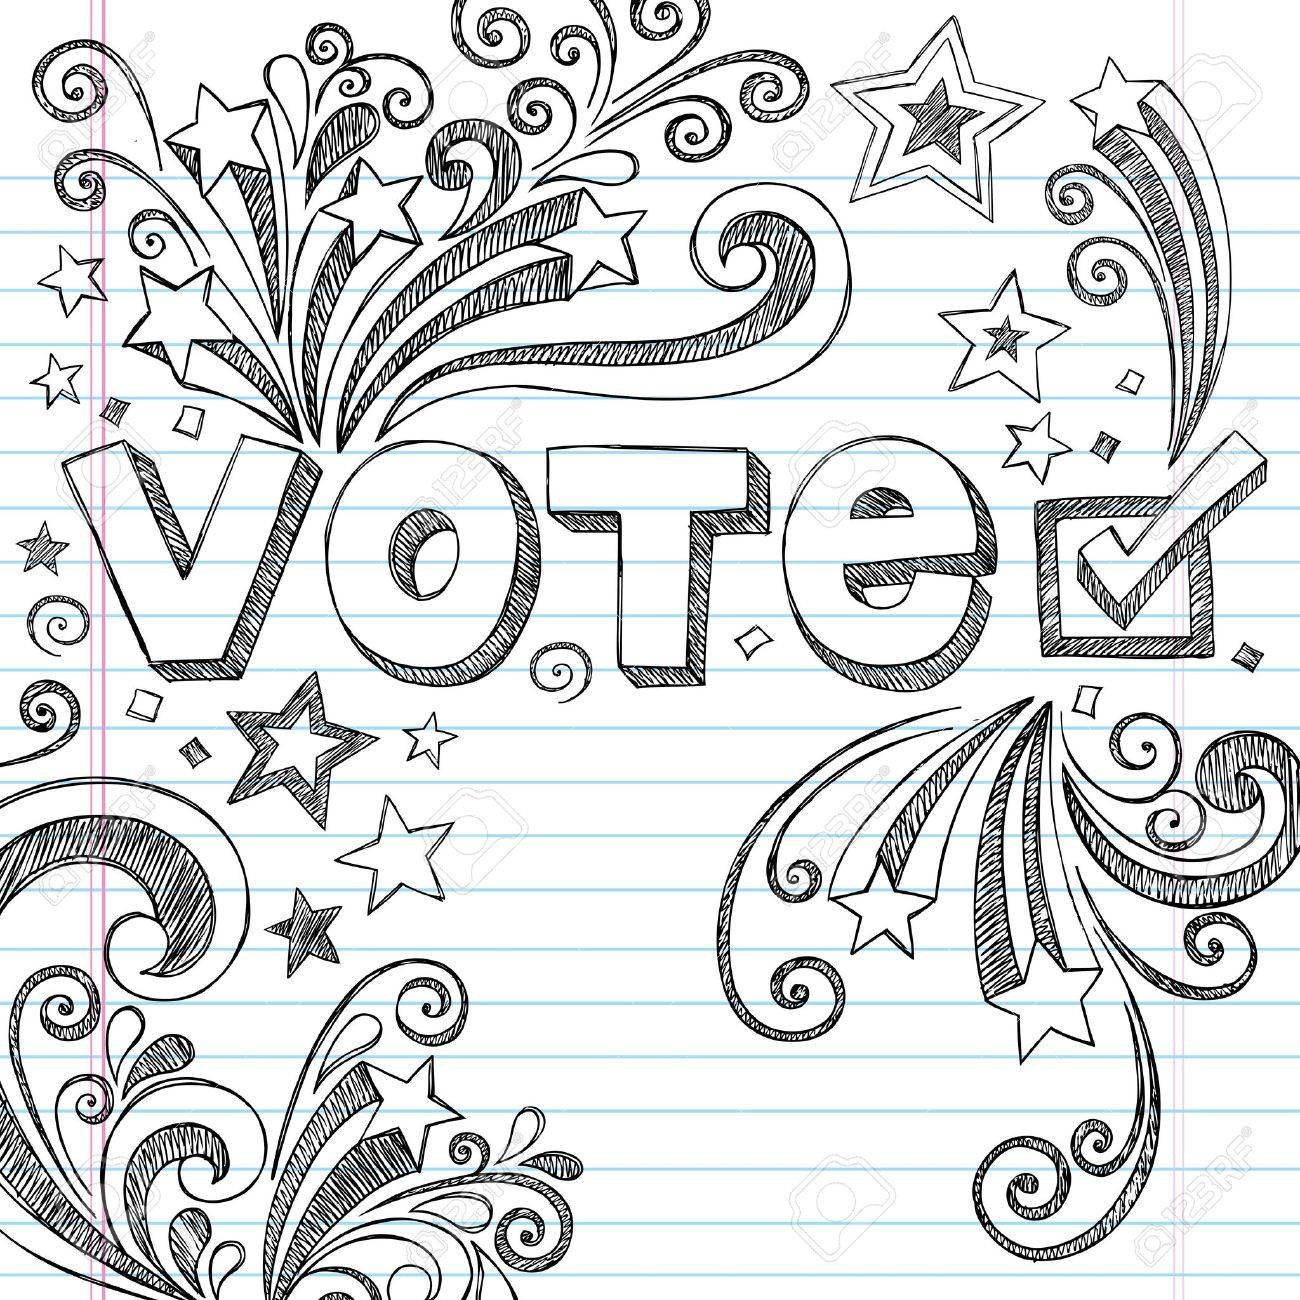 Vote Presidential Election Back to School Style Sketchy Notebook Doodles with Stars and Swirls- Hand-Drawn  Illustration Design Elements on Lined Sketchbook Paper Background Stock Vector - 15675556